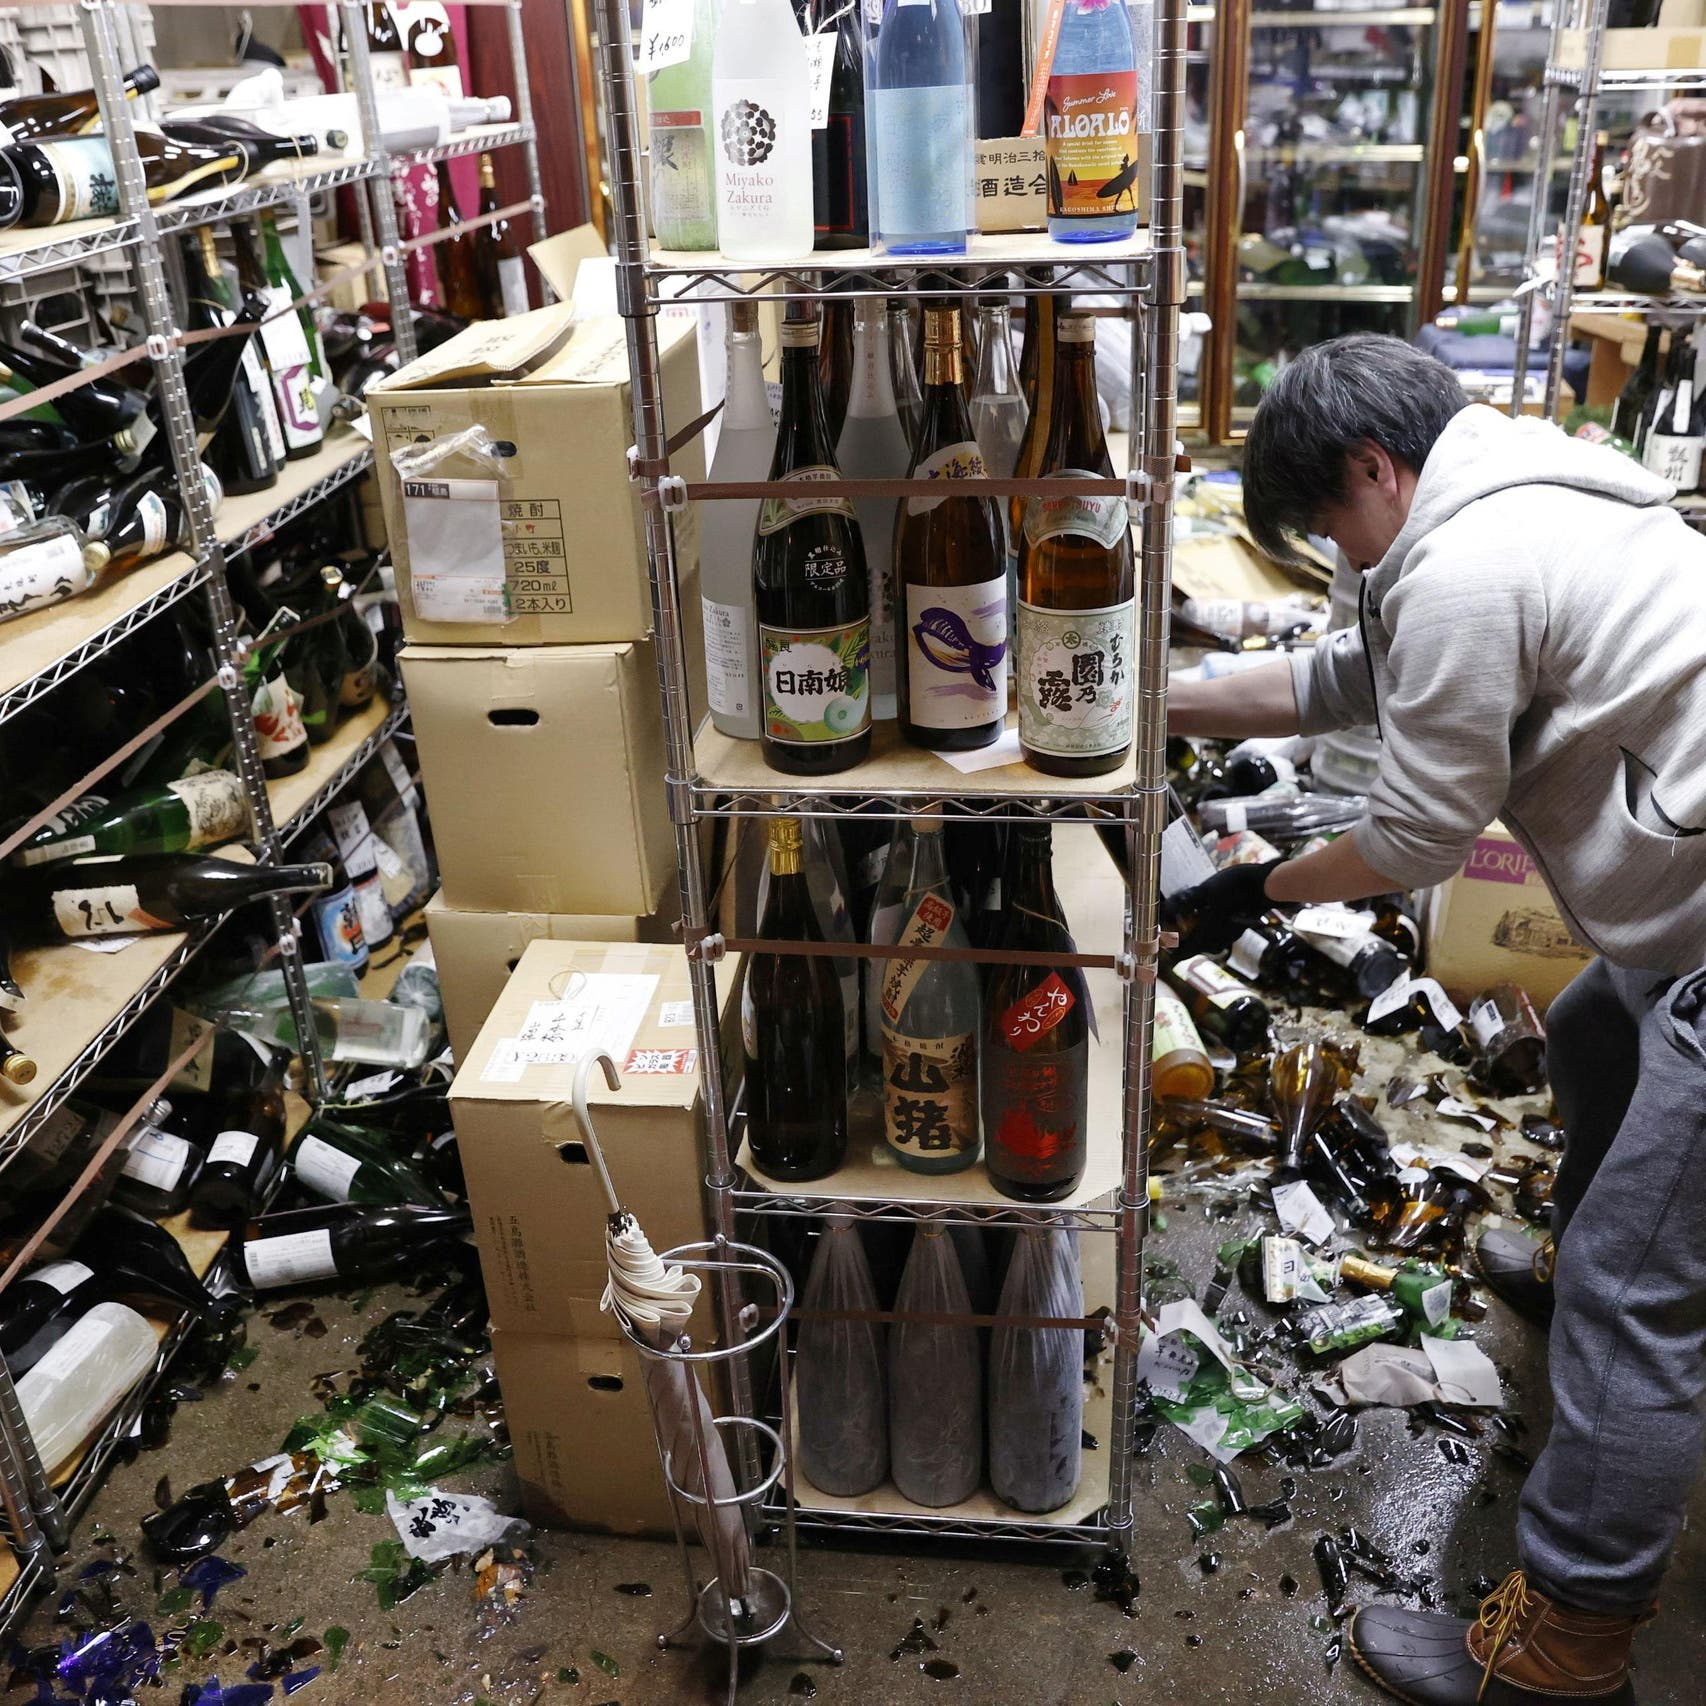 Strong 7.1 magnitude earthquake hits off coast of Japan's Fukushima